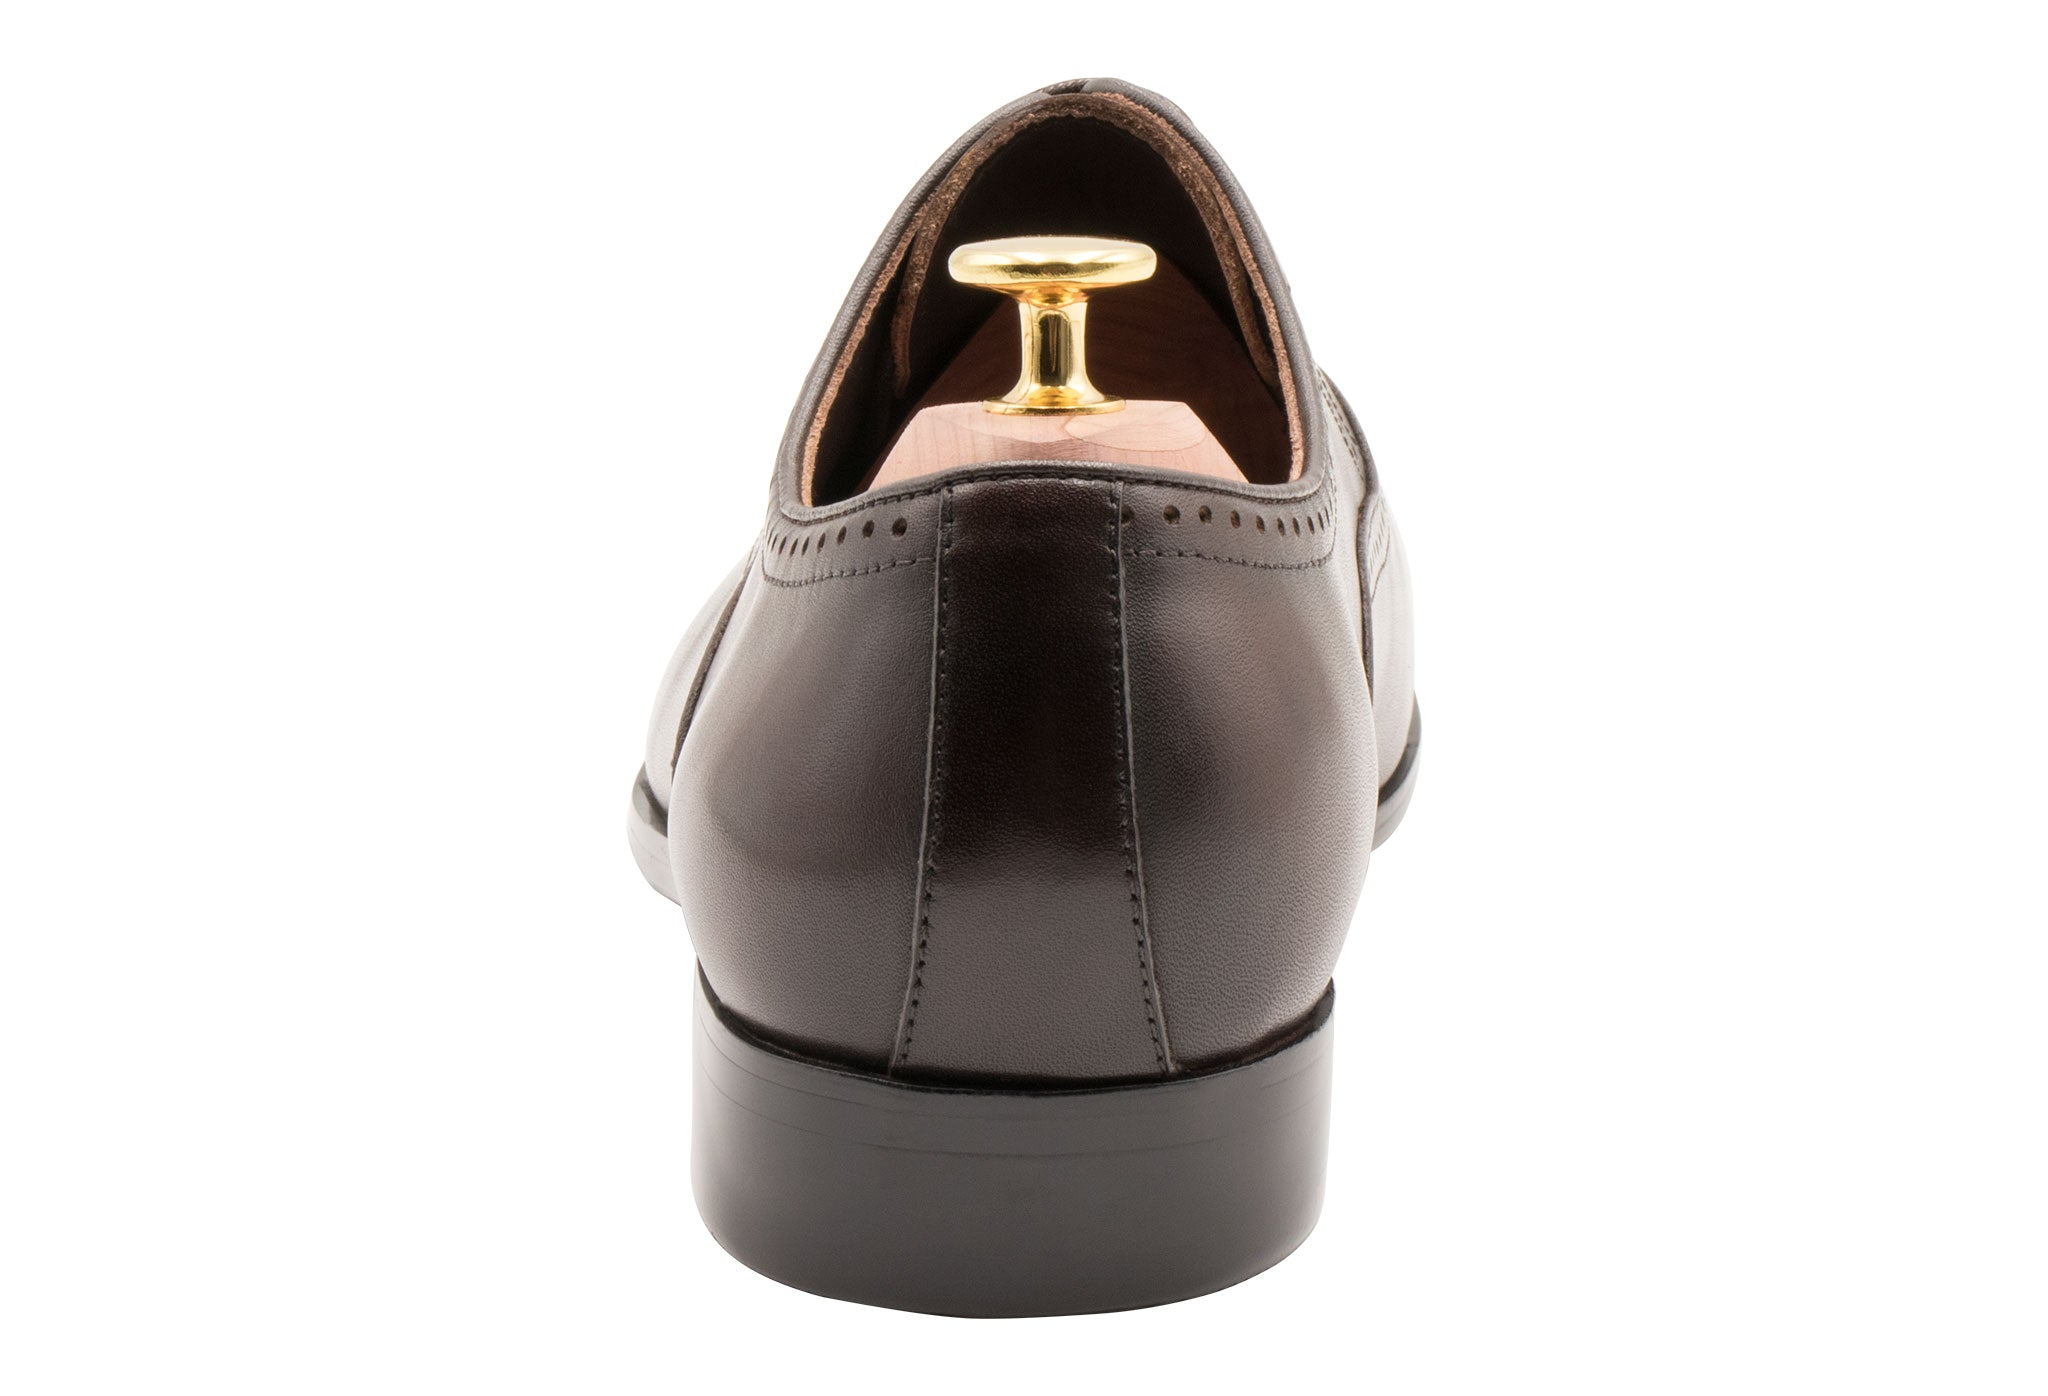 Mendoza Medallion Walnut Oxford Leather Shoes